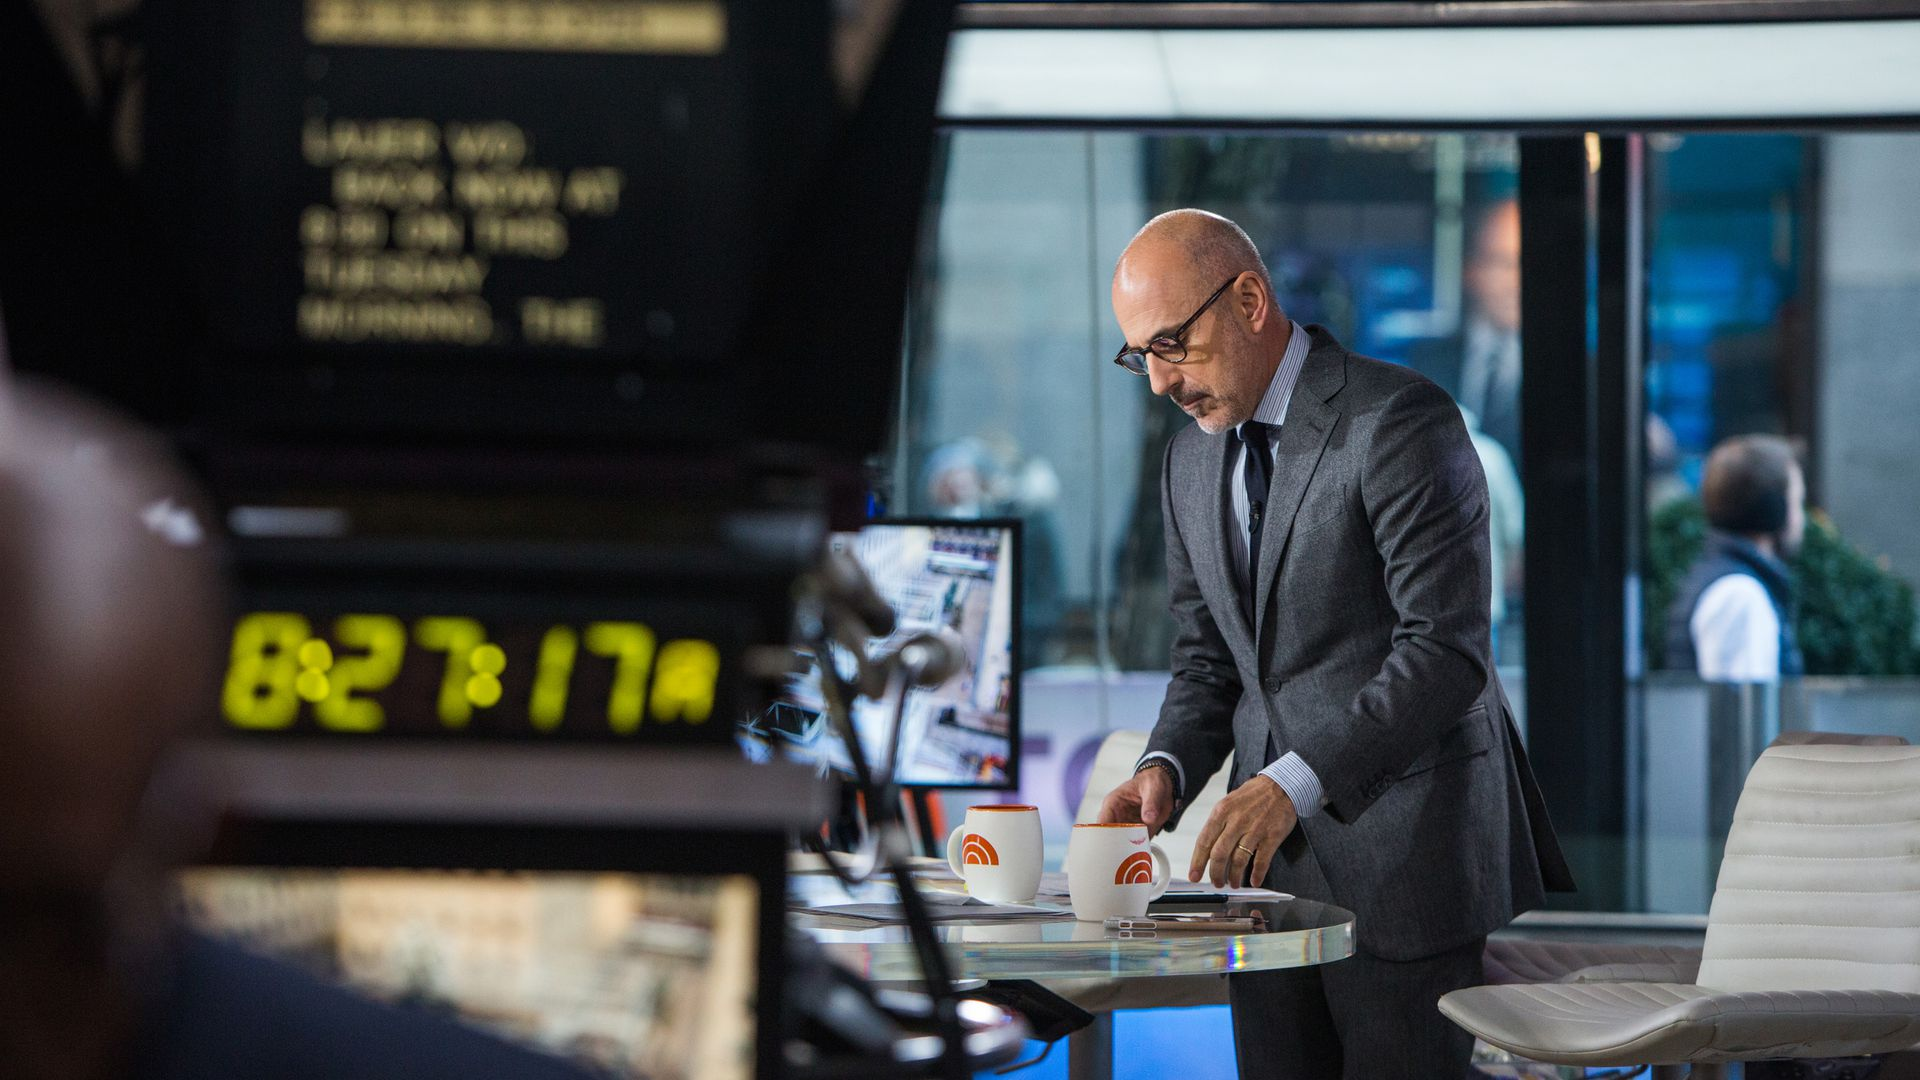 Matt Lauer leans over a table while on set of The Today Show